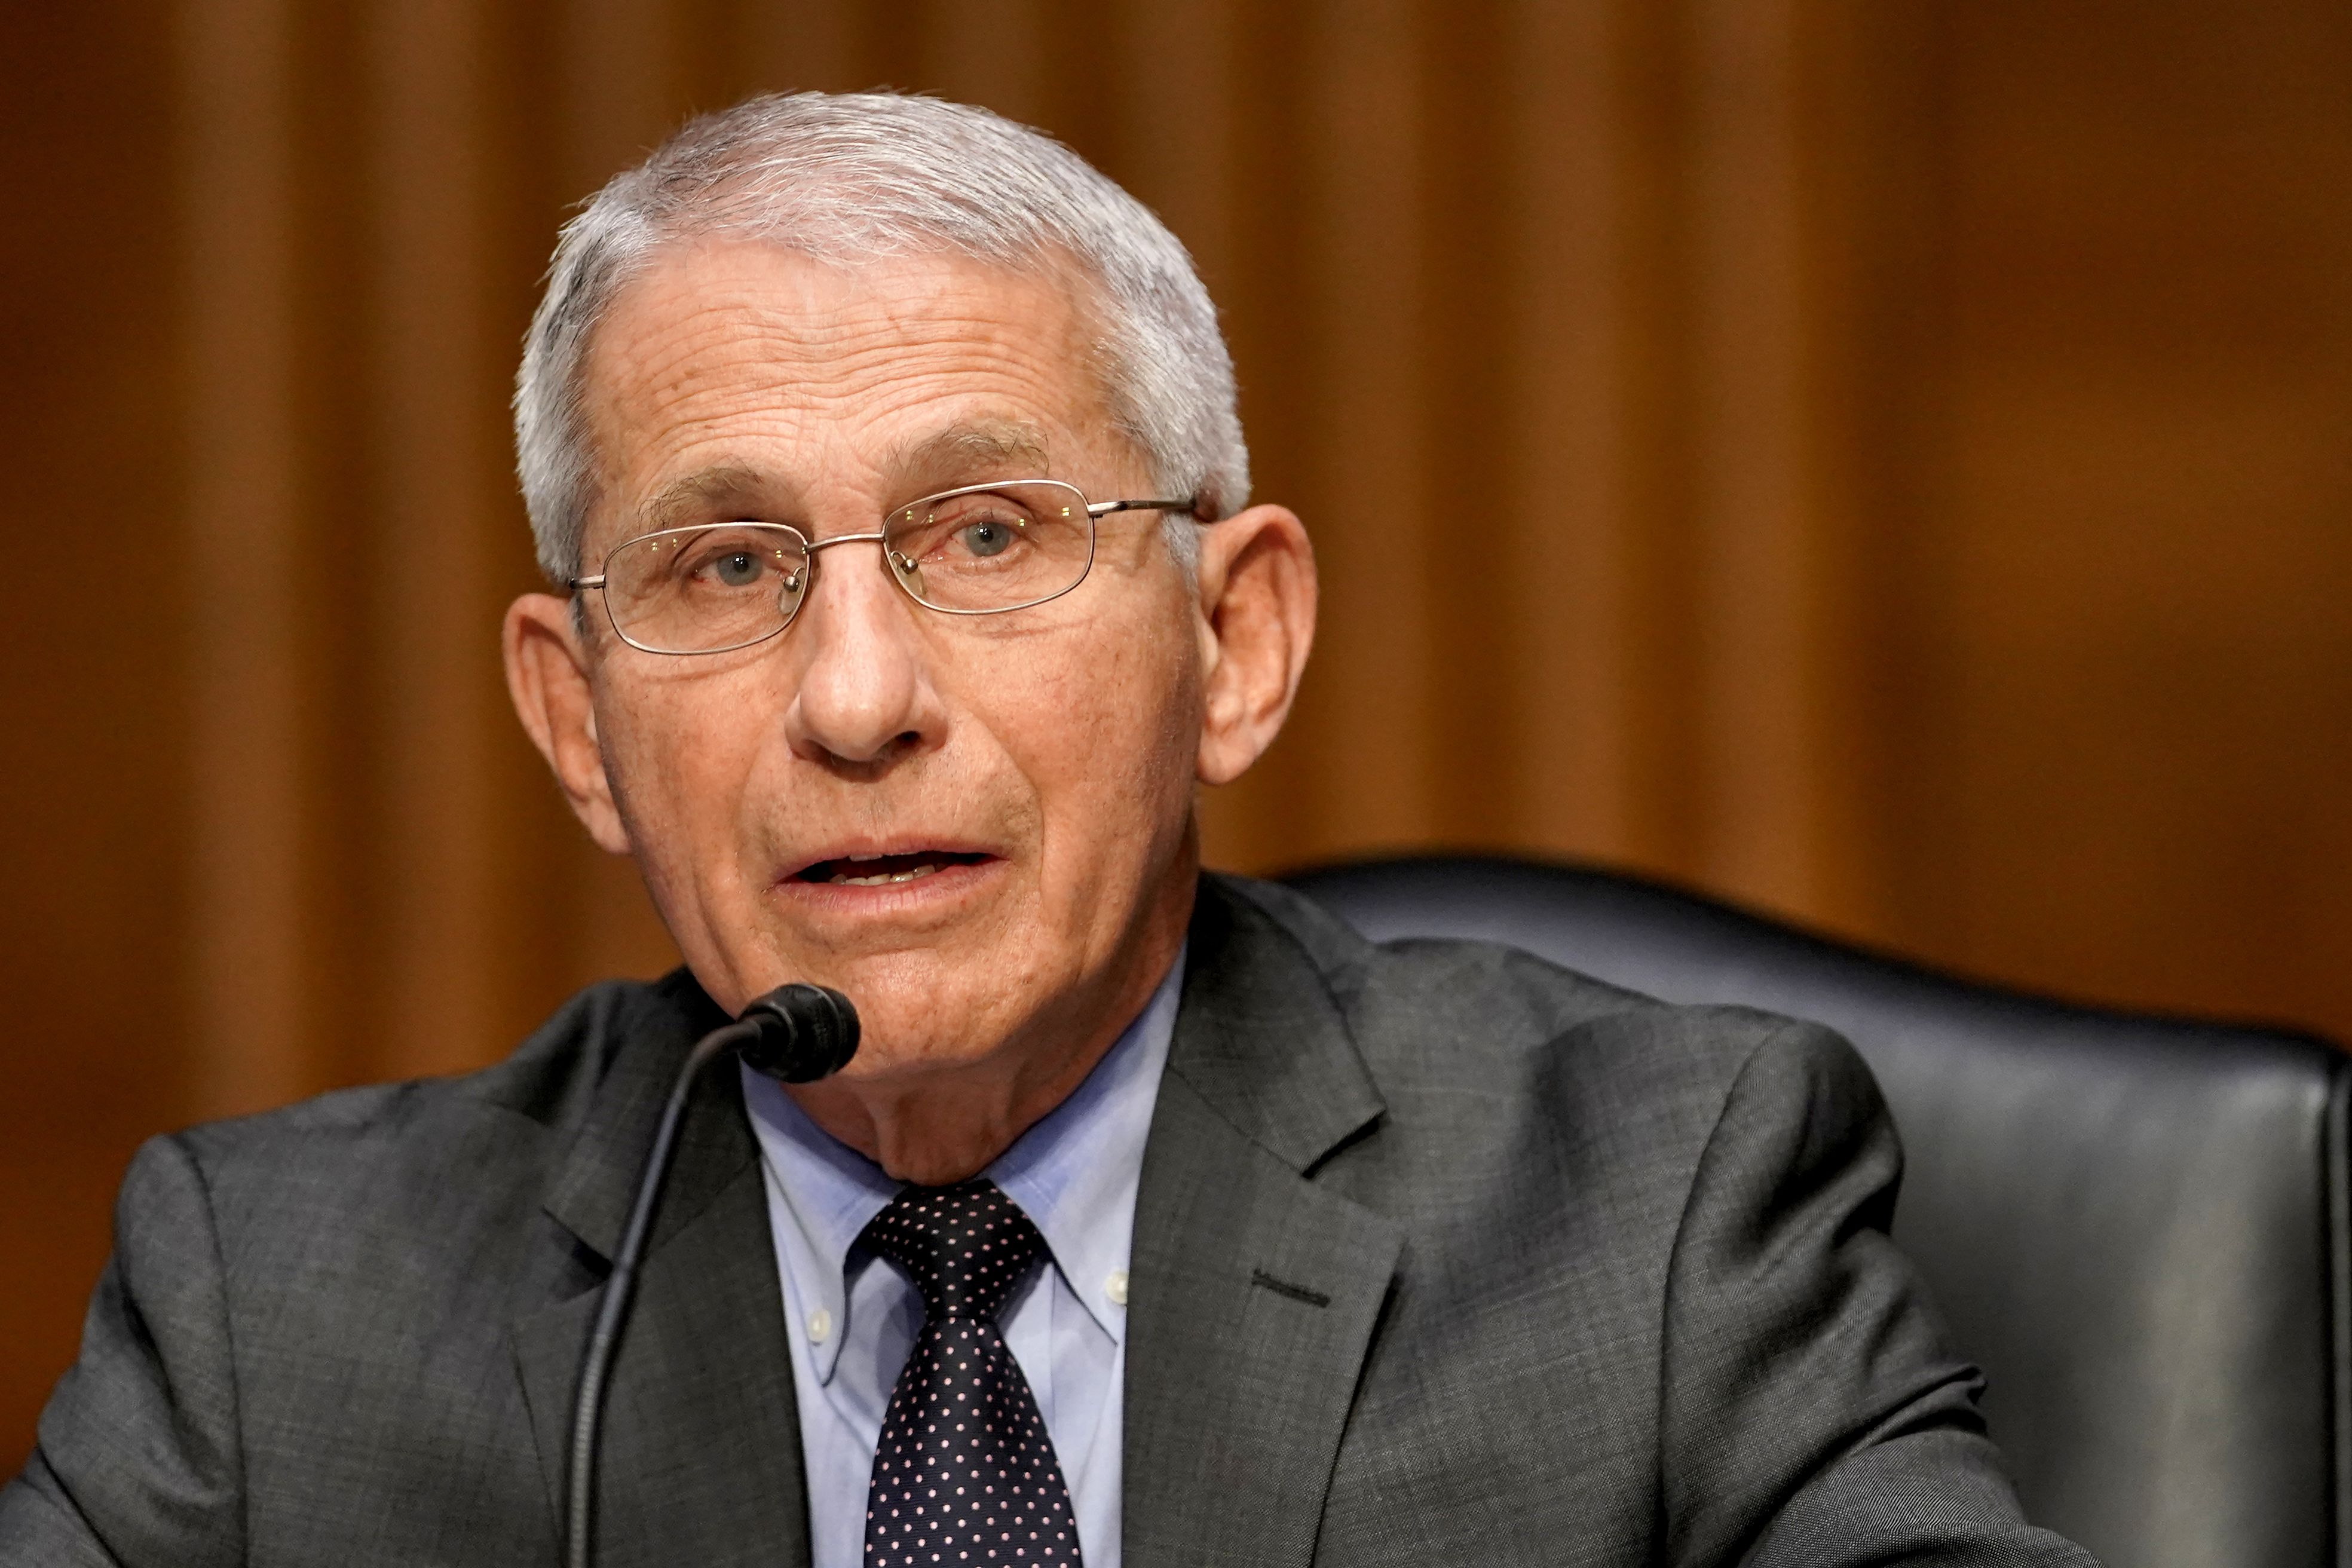 Anthony Fauci speaks at an event.